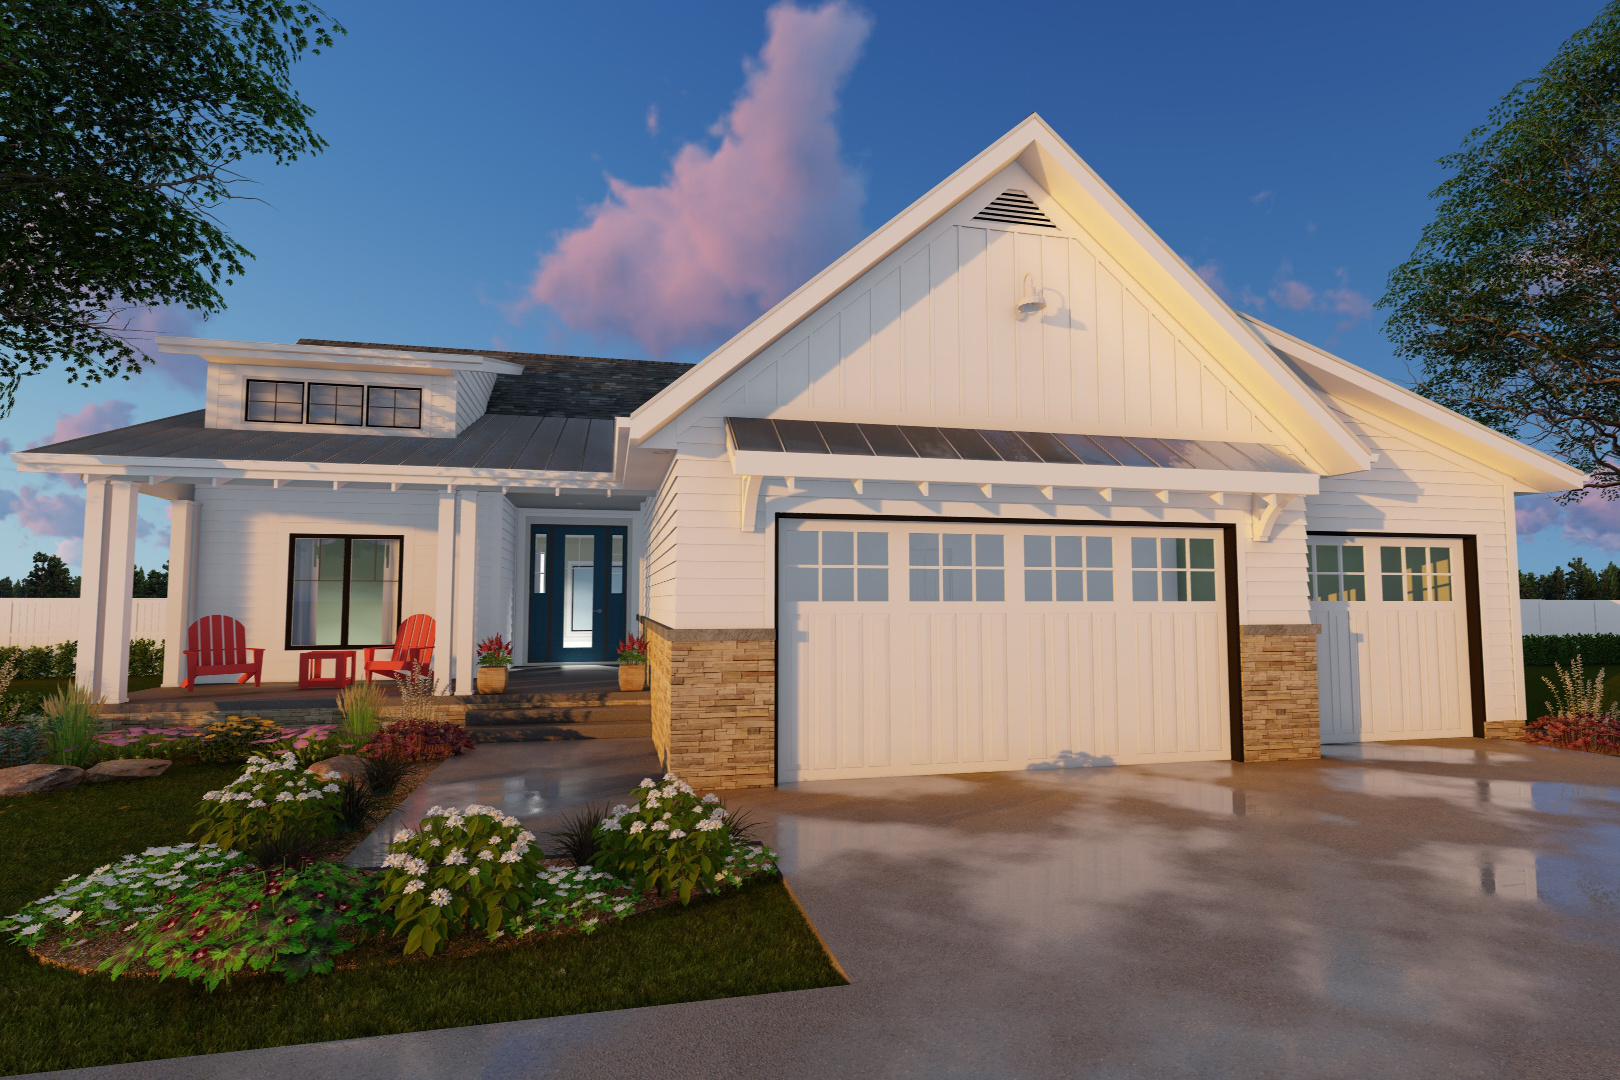 Farmhouse house plan 3 bedrms 2 baths 1701 sq ft for 100 story home